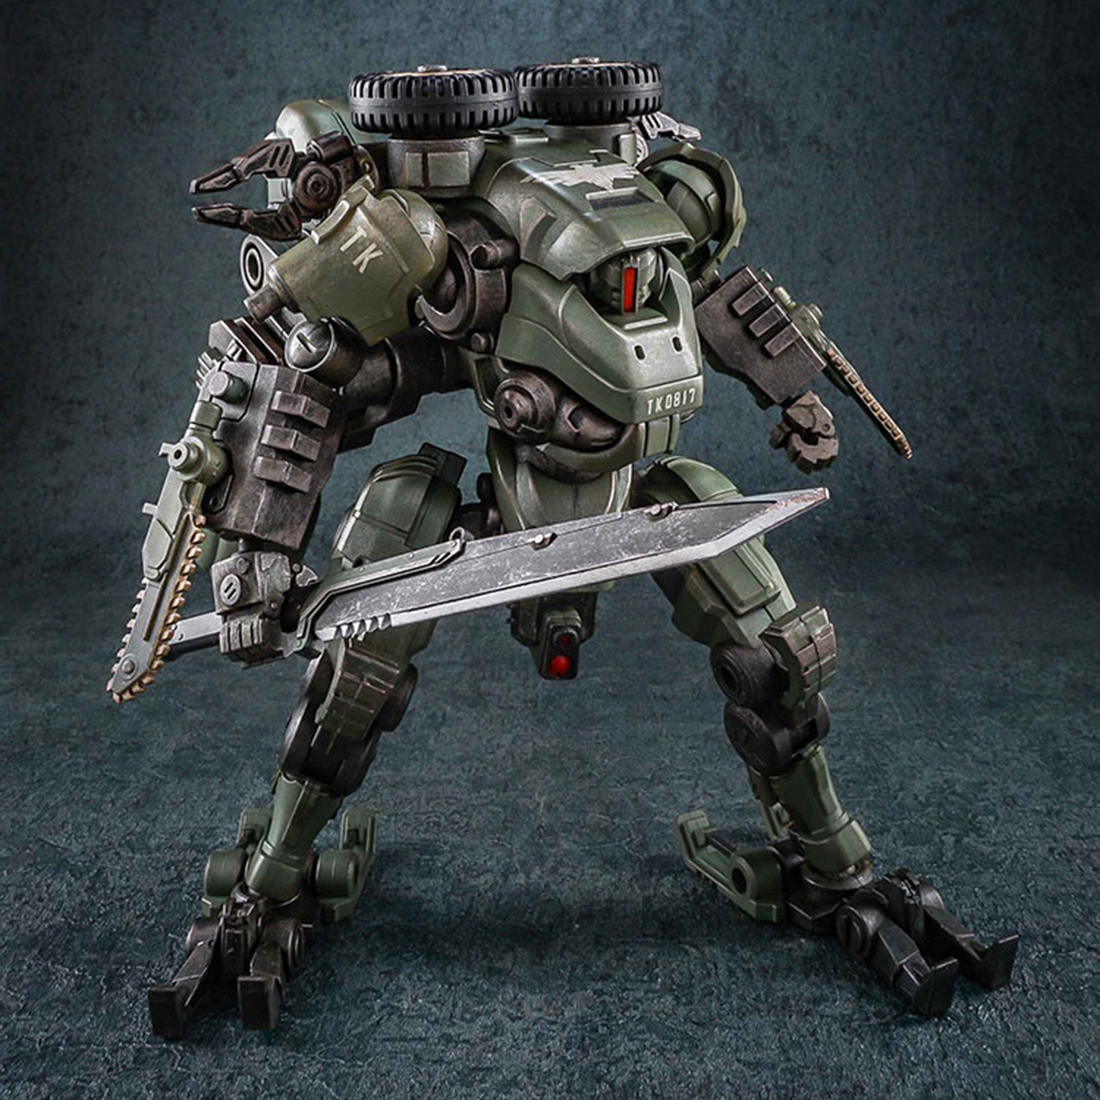 1/27 Scale Movable Assault Mecha Action Figure Tiekui DIY Collectable Handwork Mecha Model Birthday Present Gift for Mech Fans